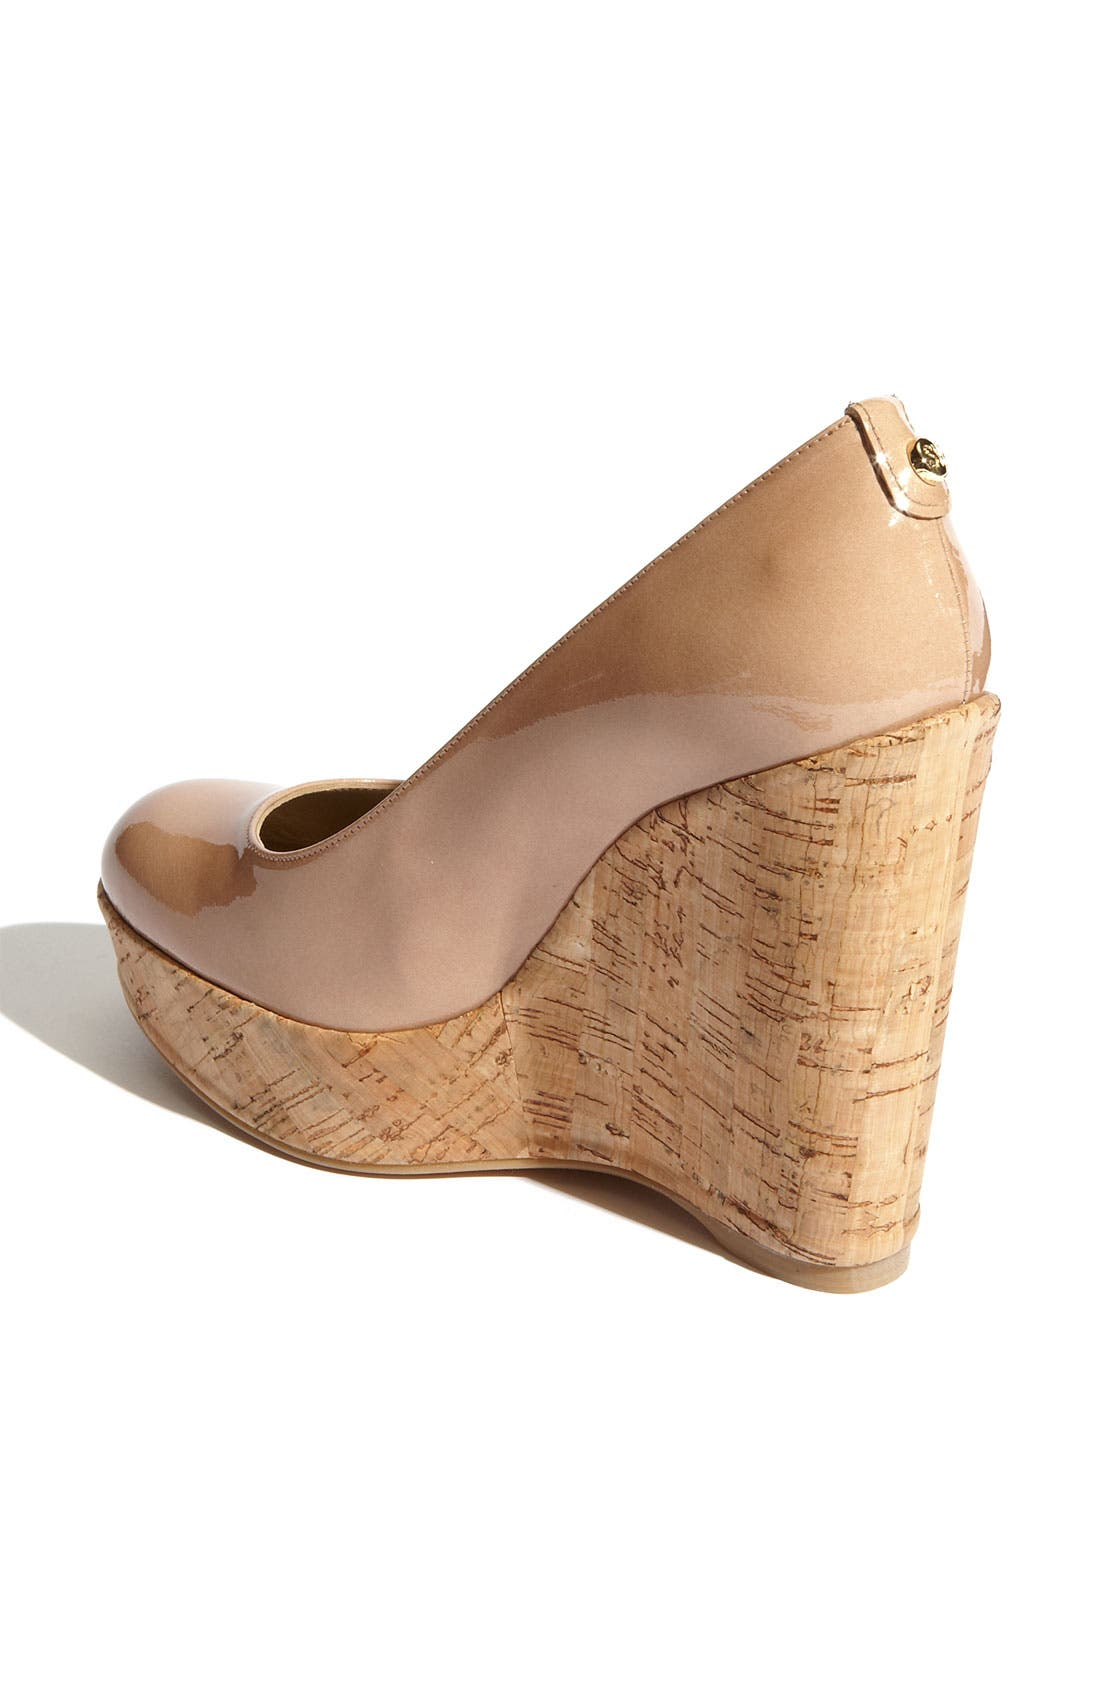 Alternate Image 2  - Stuart Weitzman 'Corkswoon' Wedge